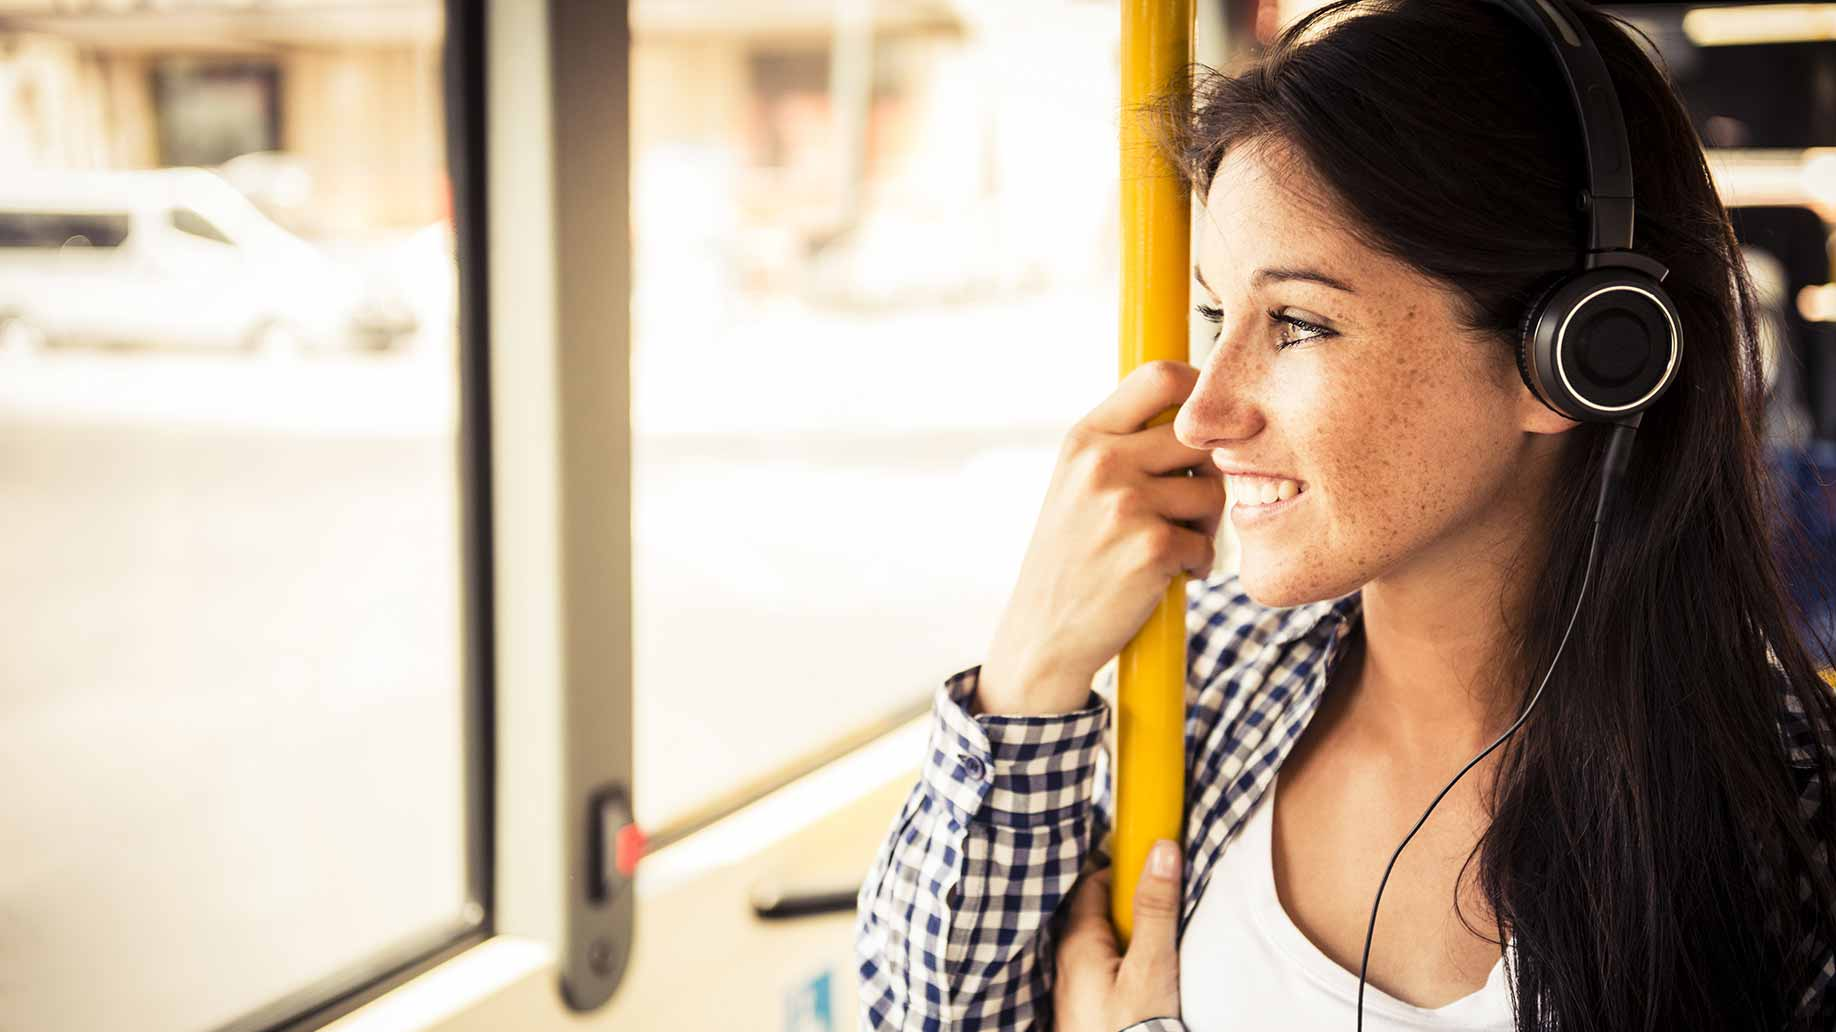 a young woman listening to music on the bus